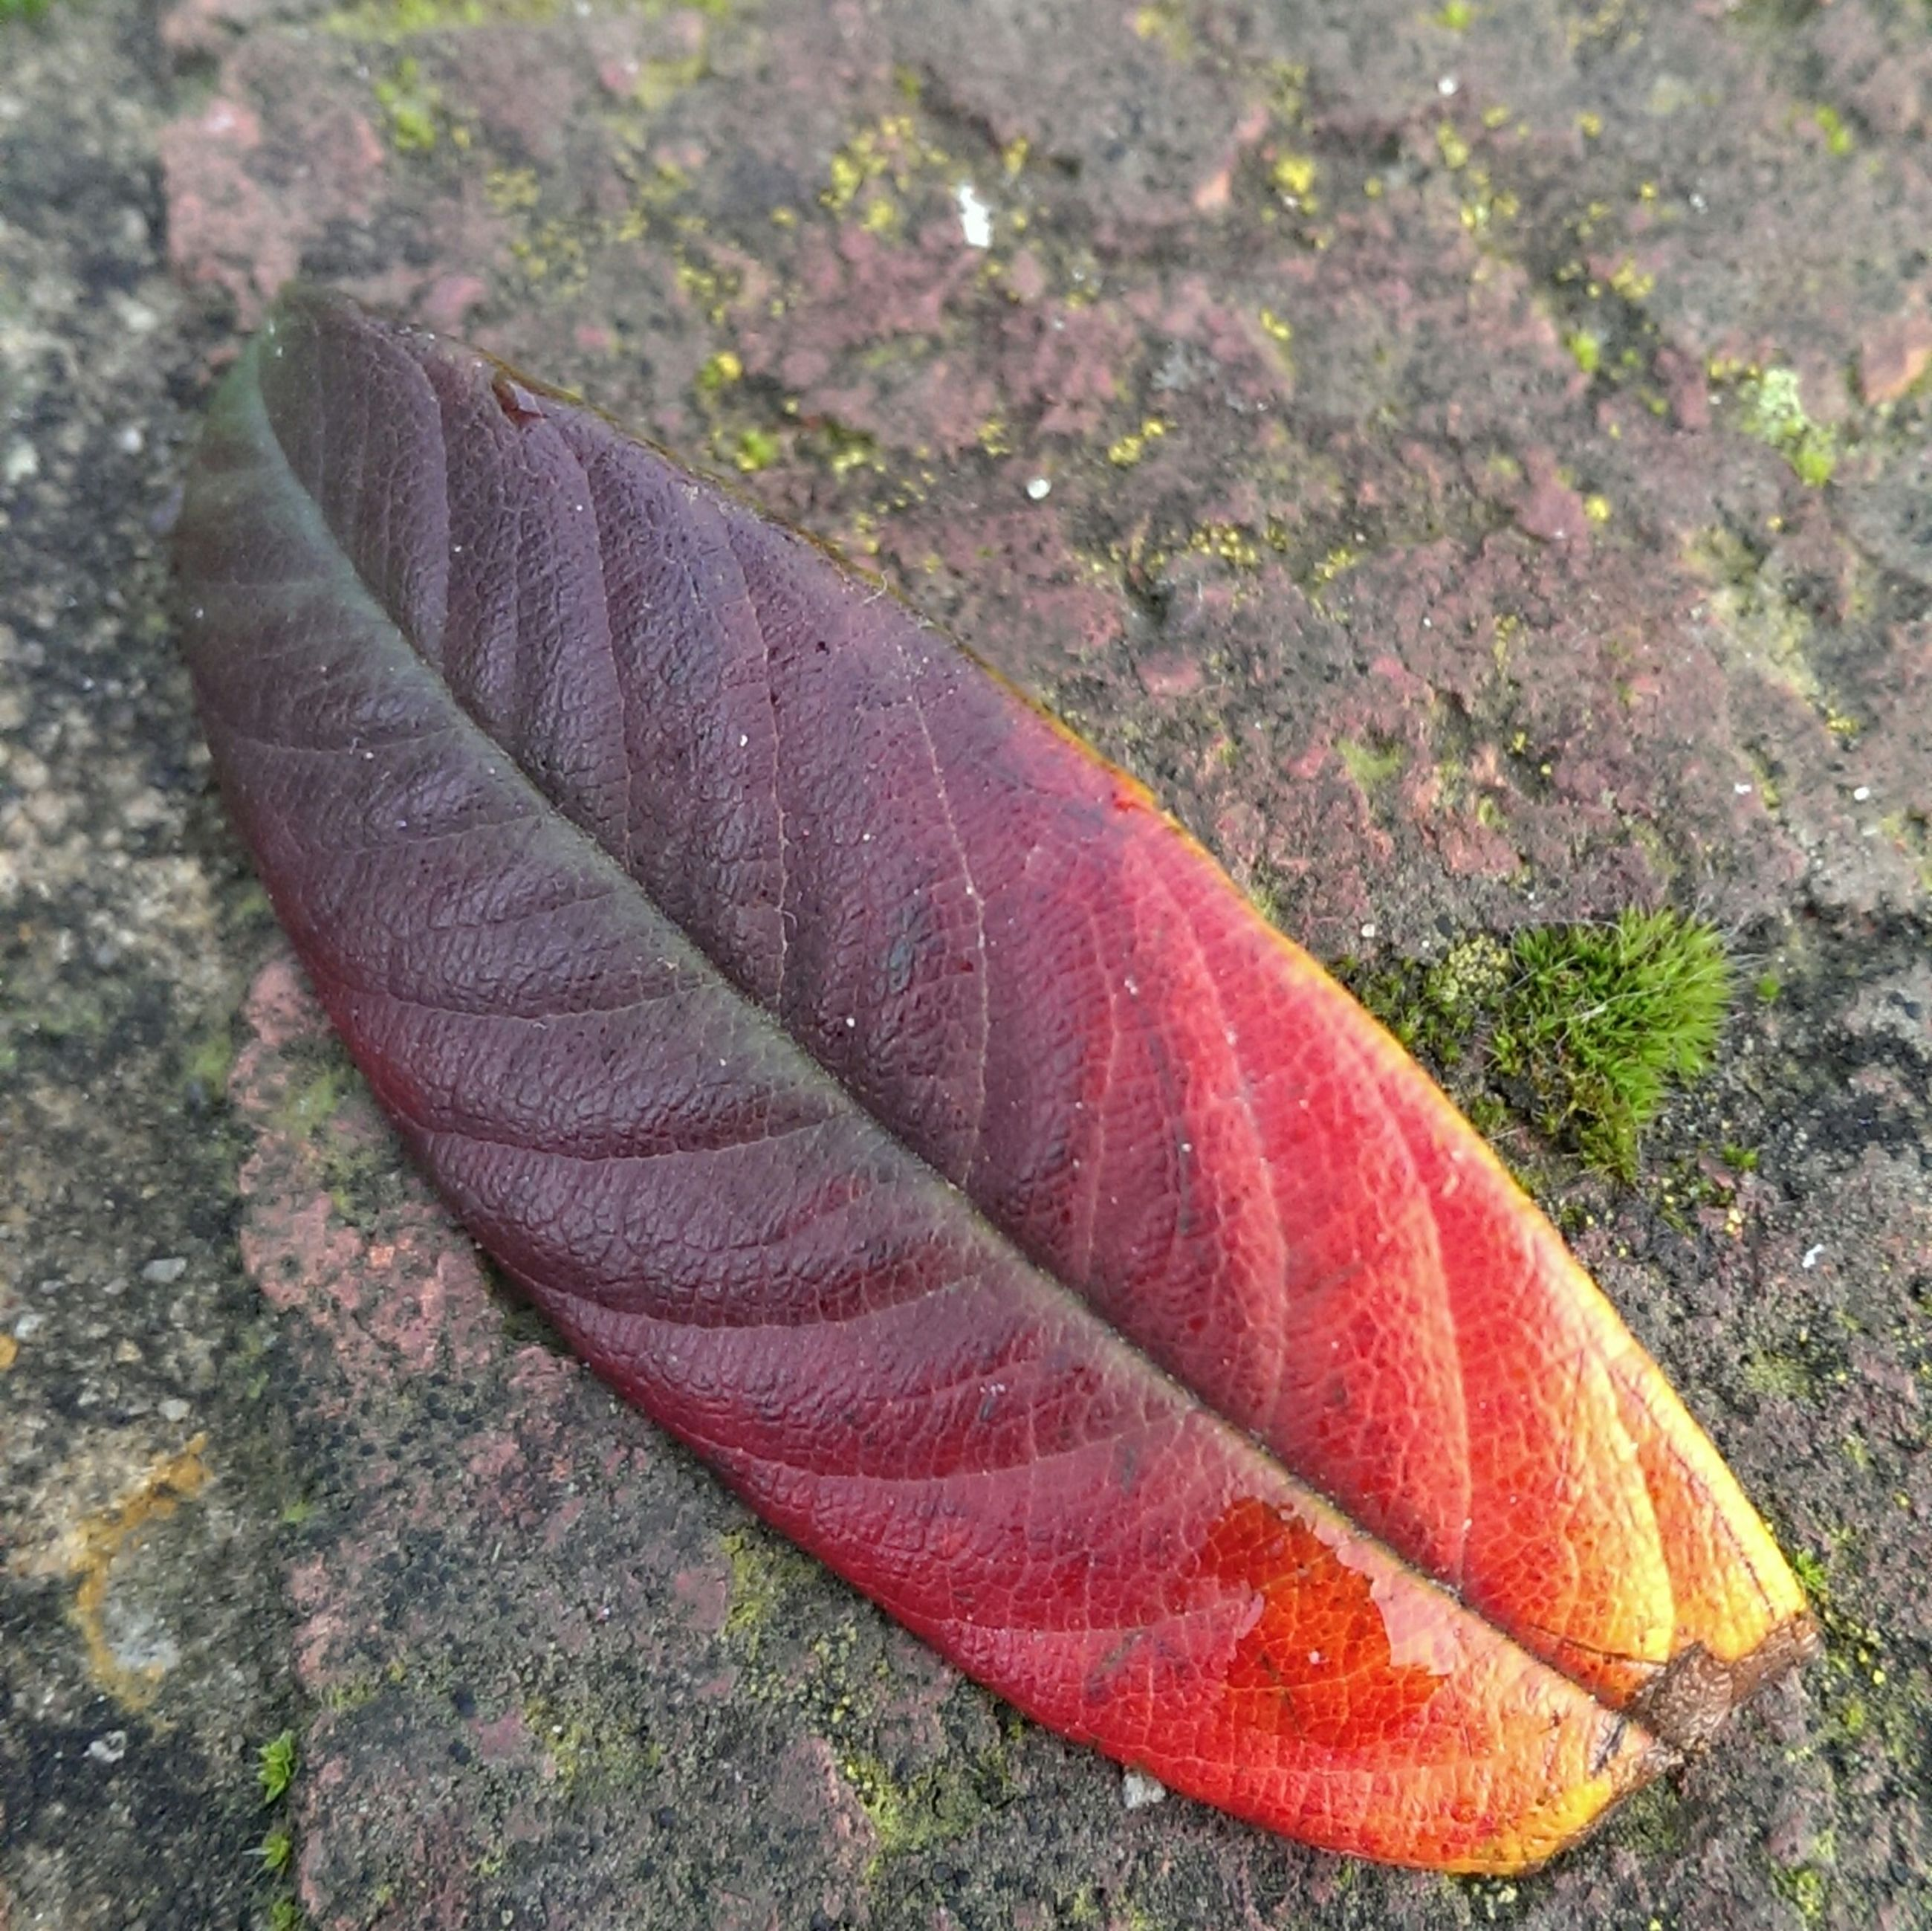 high angle view, close-up, nature, leaf, field, red, autumn, day, growth, fragility, outdoors, ground, change, beauty in nature, no people, fallen, plant, grass, textured, season